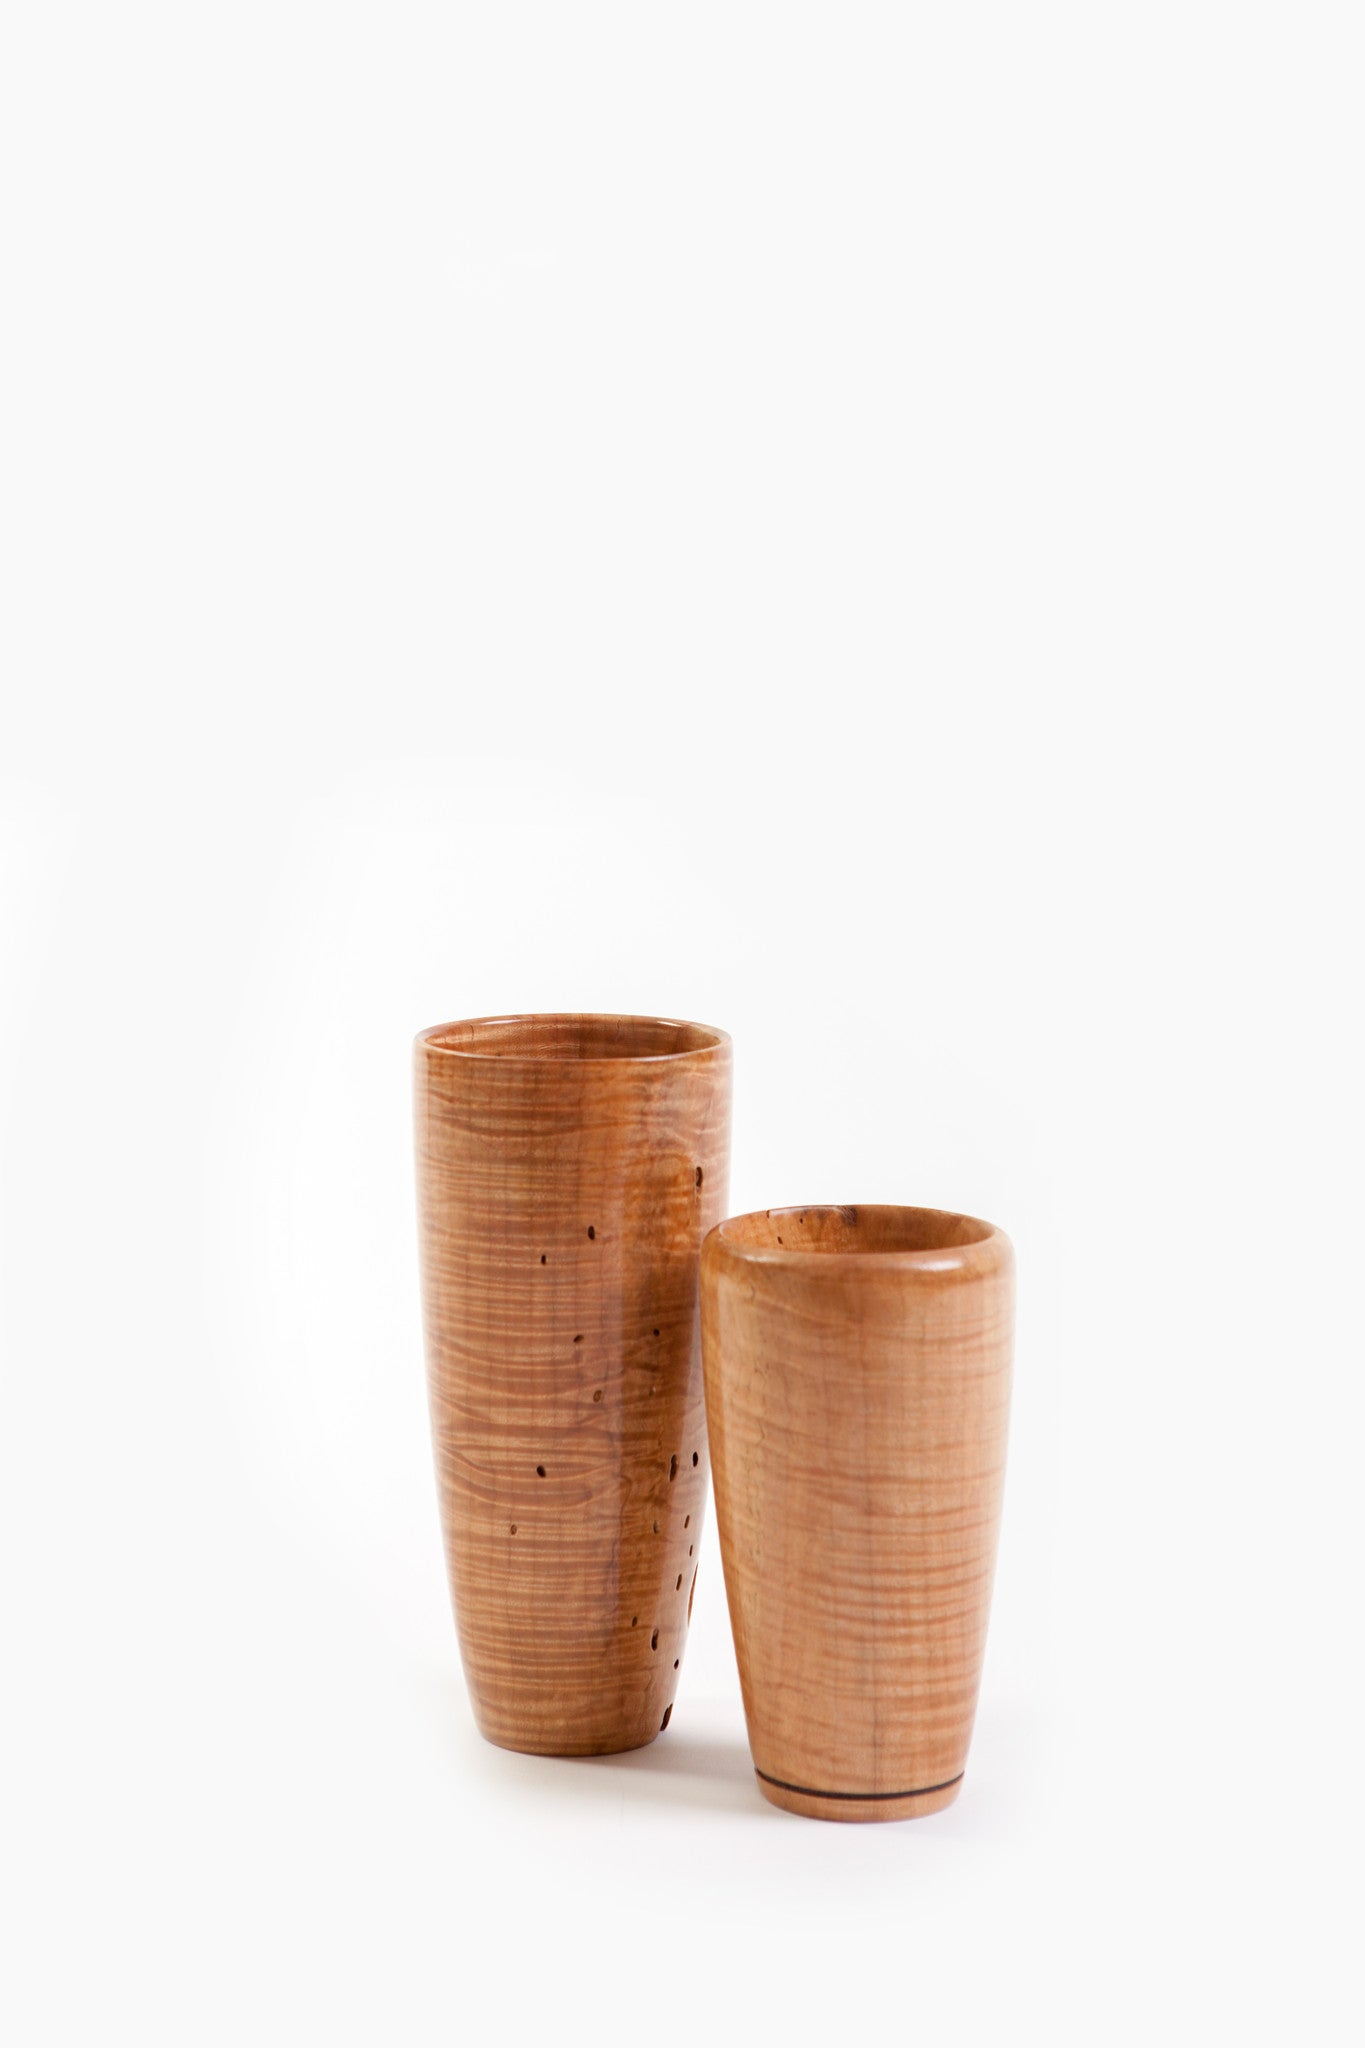 Richard Ruehle Curly Maple Wooden Vases (Tall and Medium)